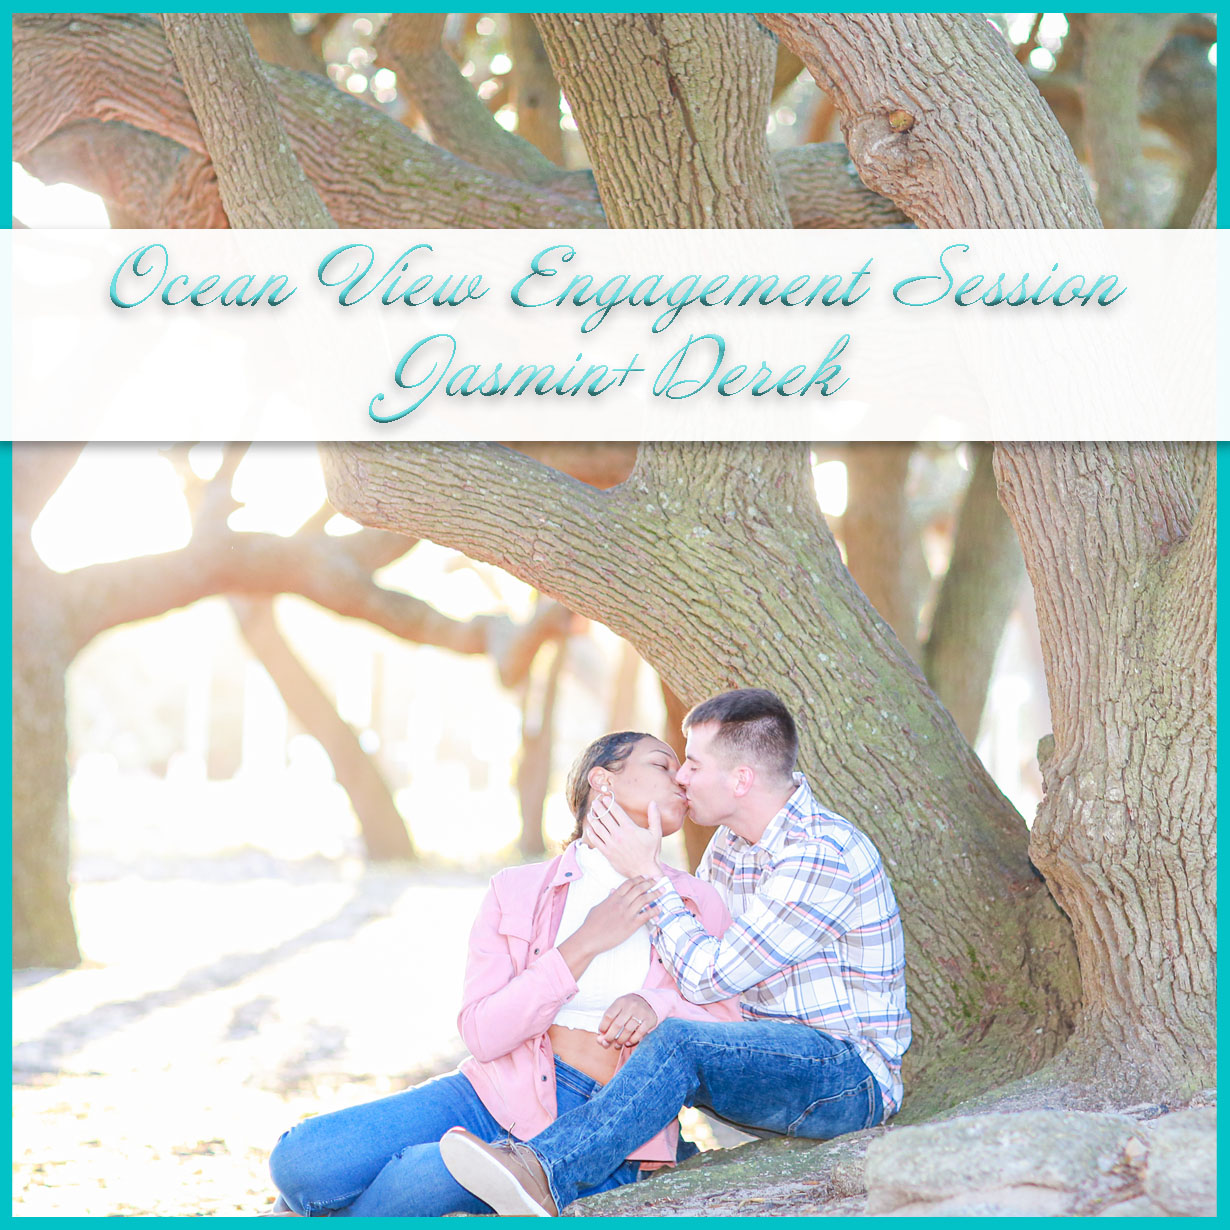 Ocean View Engagement Session